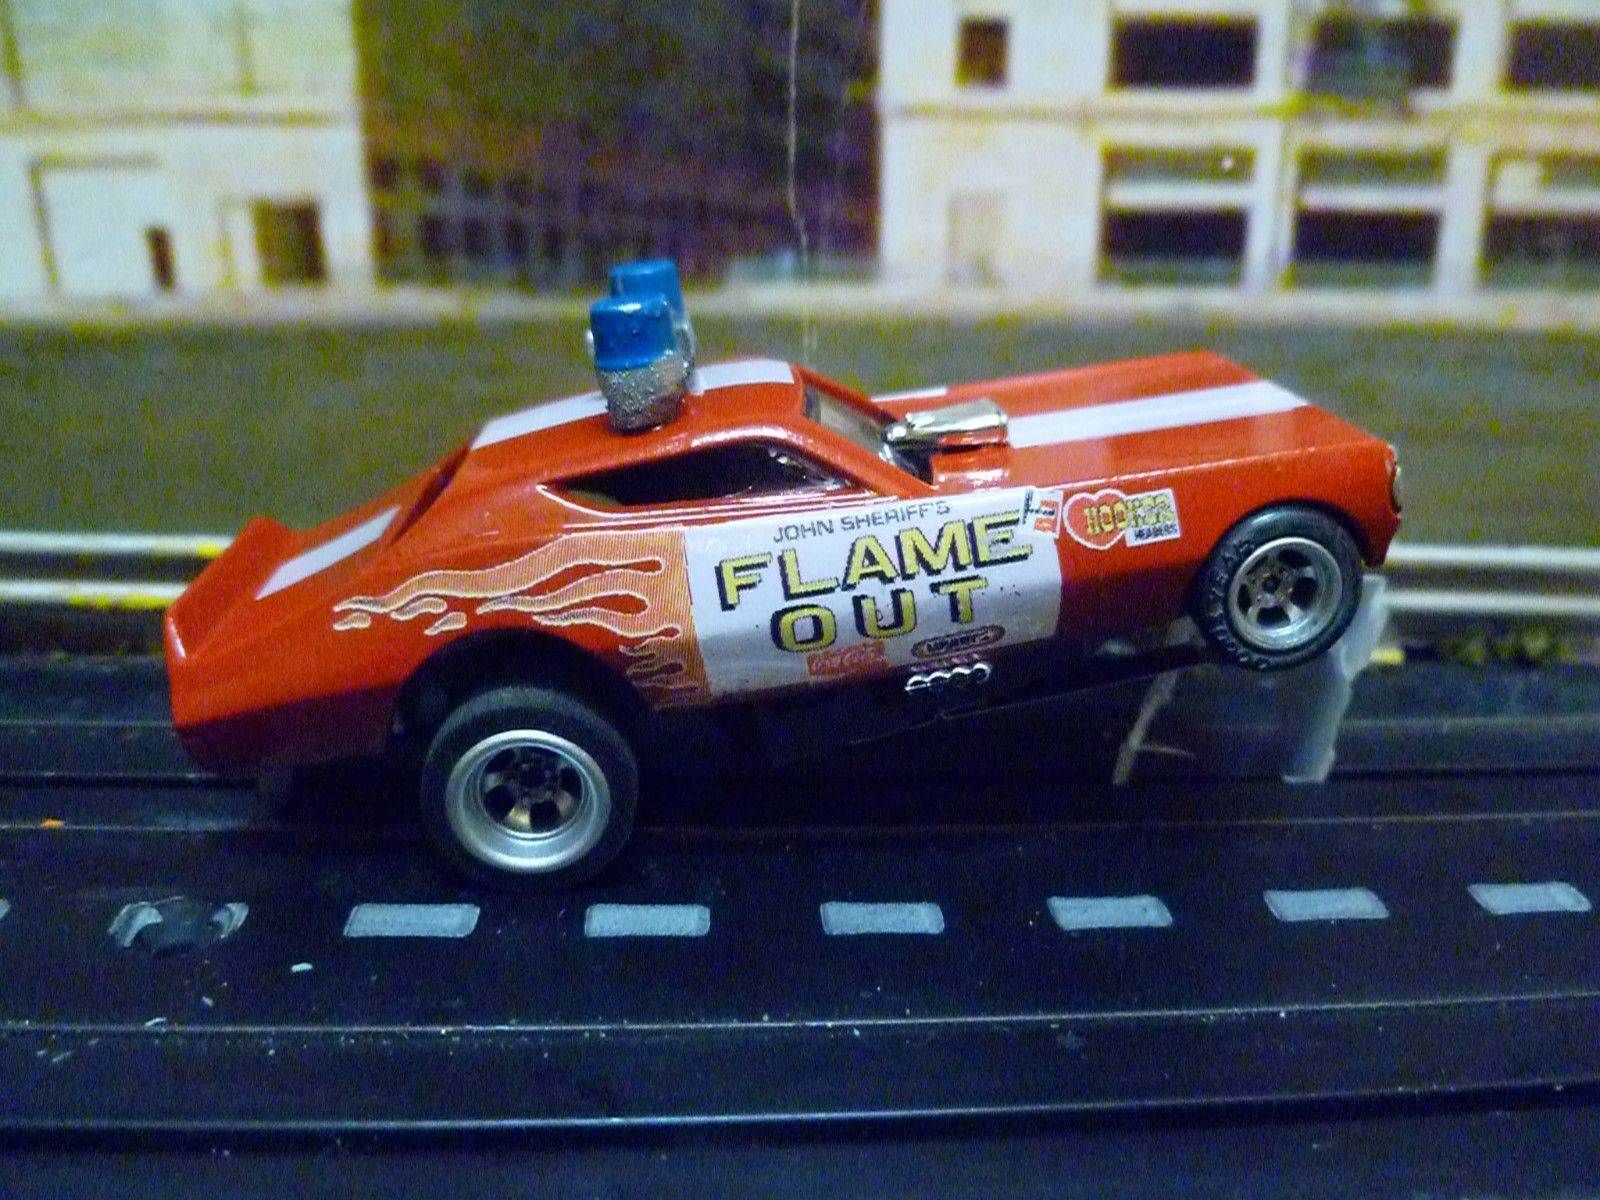 Auto world 4 gear ho slot car flame out plymouth duster